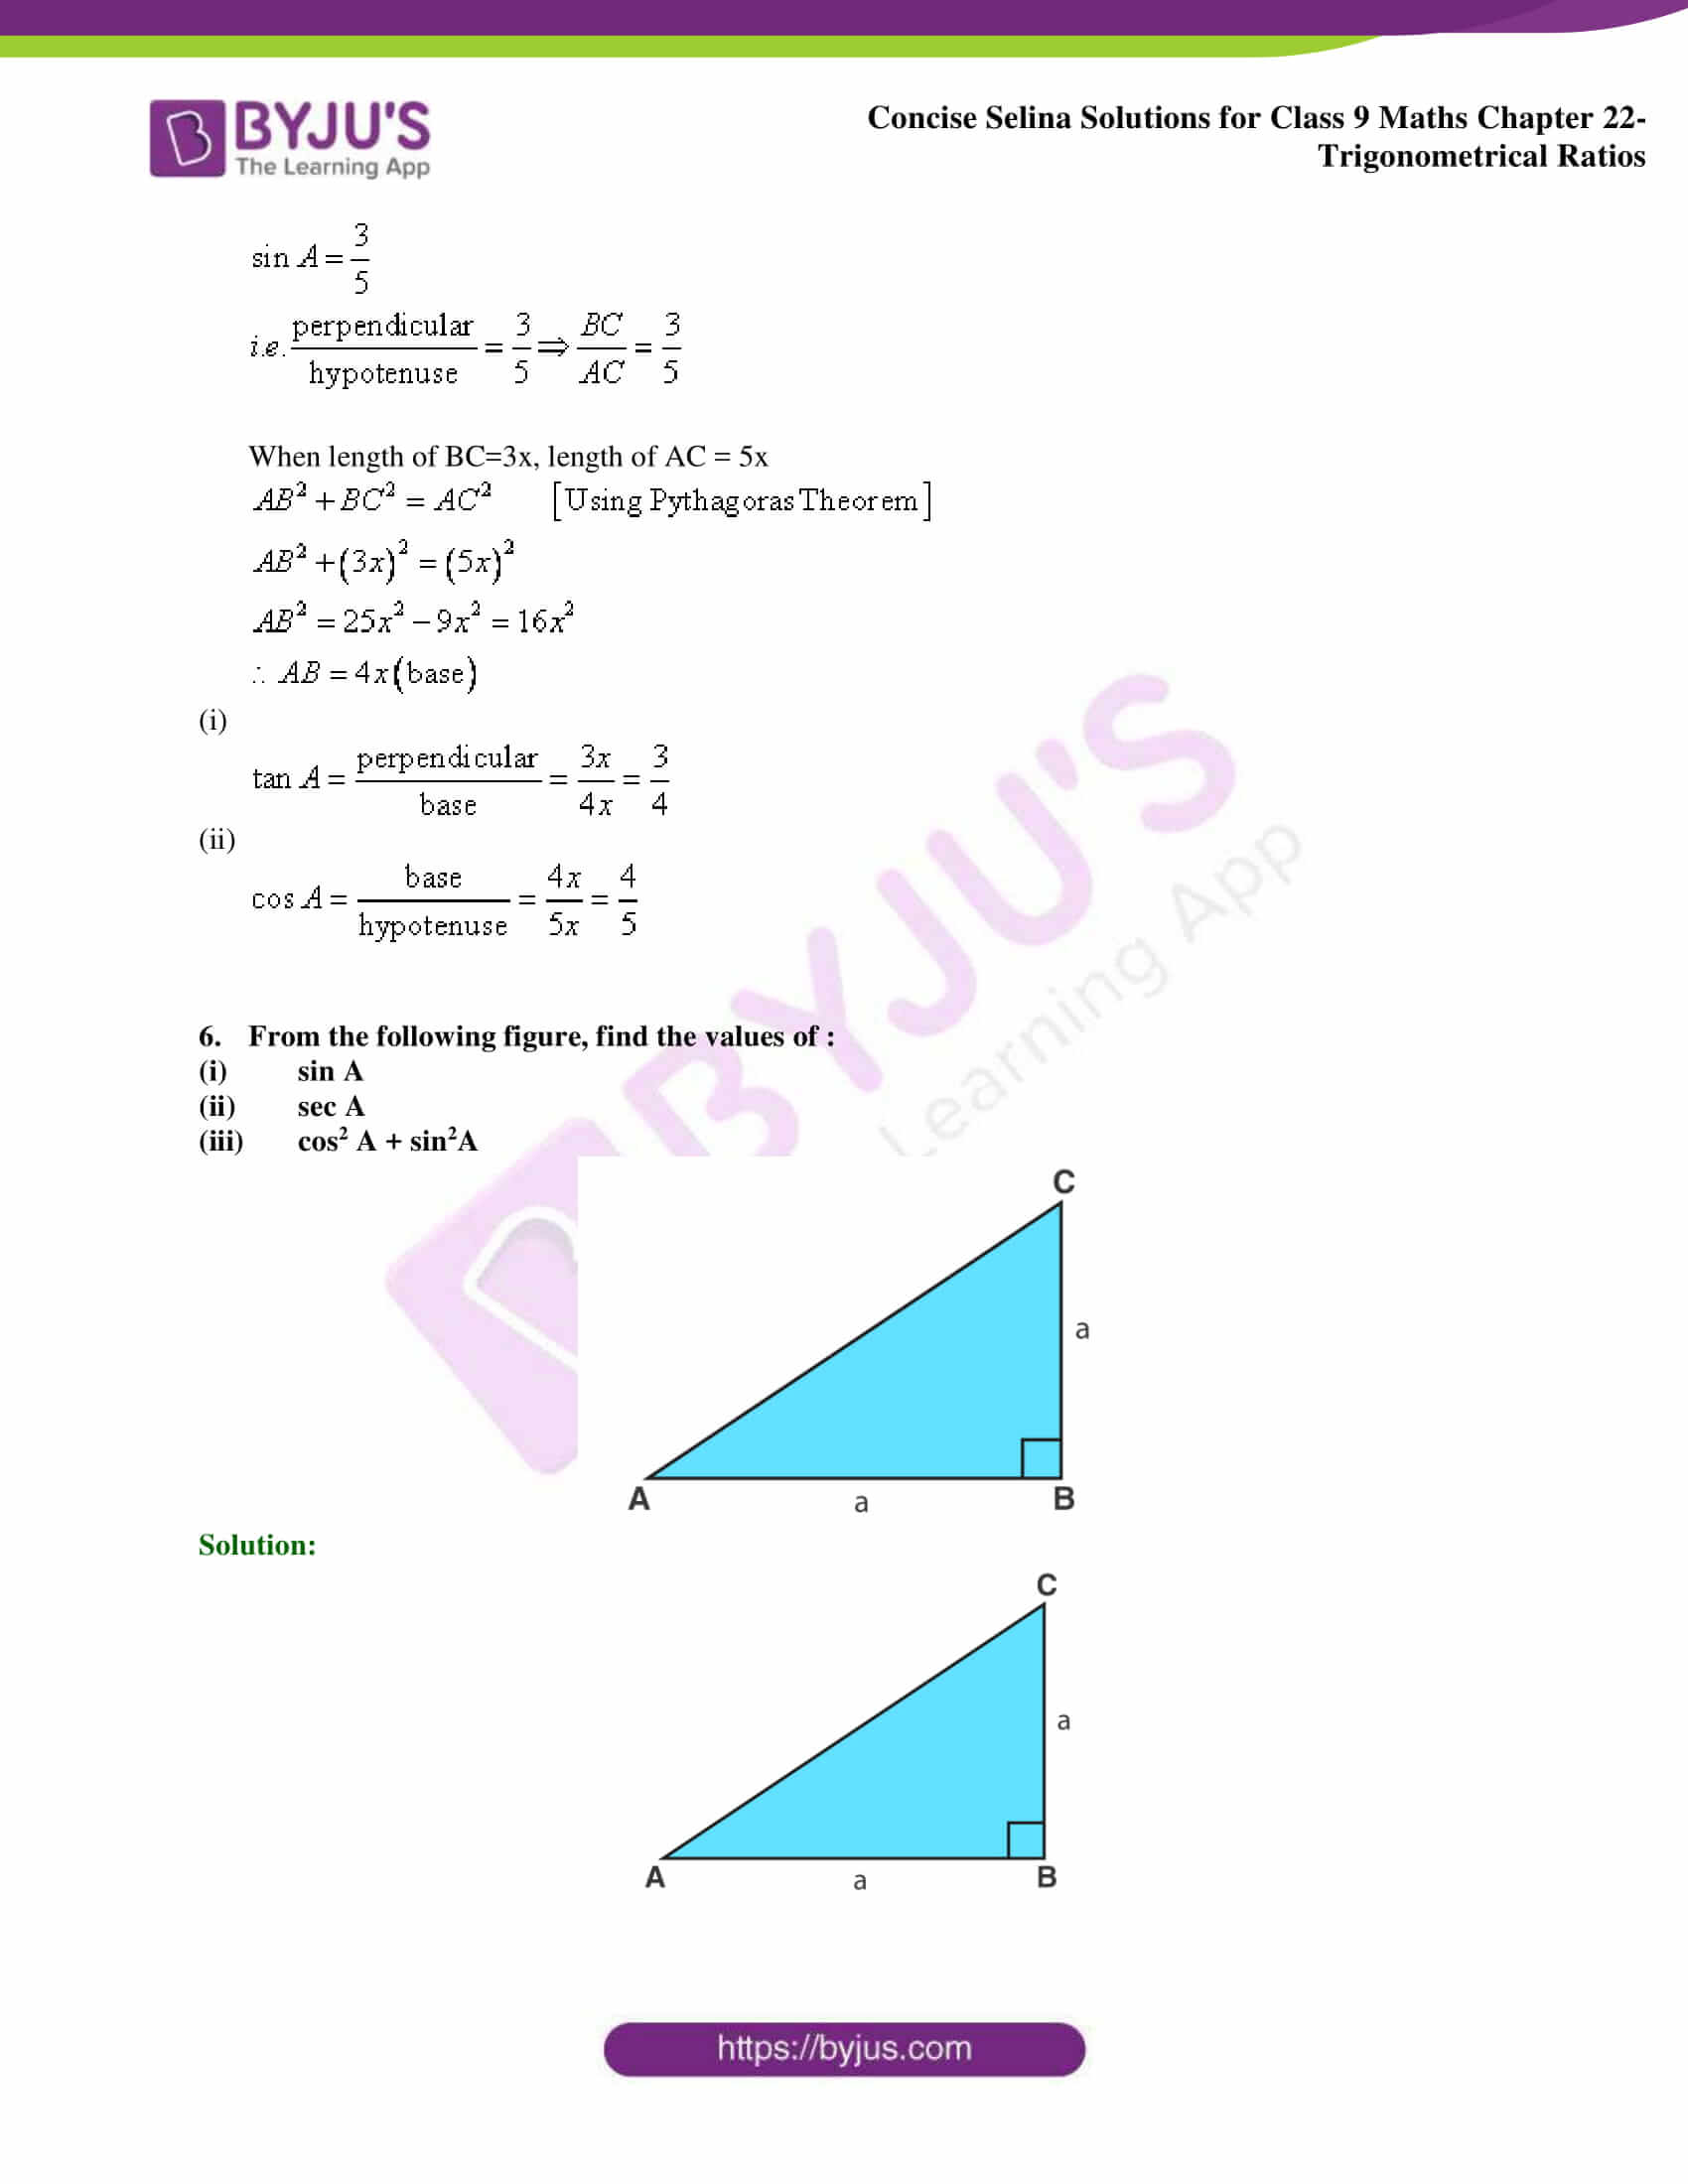 Concise Selina Solutions Class 9 Maths Chapter 22 Trigonometrical Ratios part 07